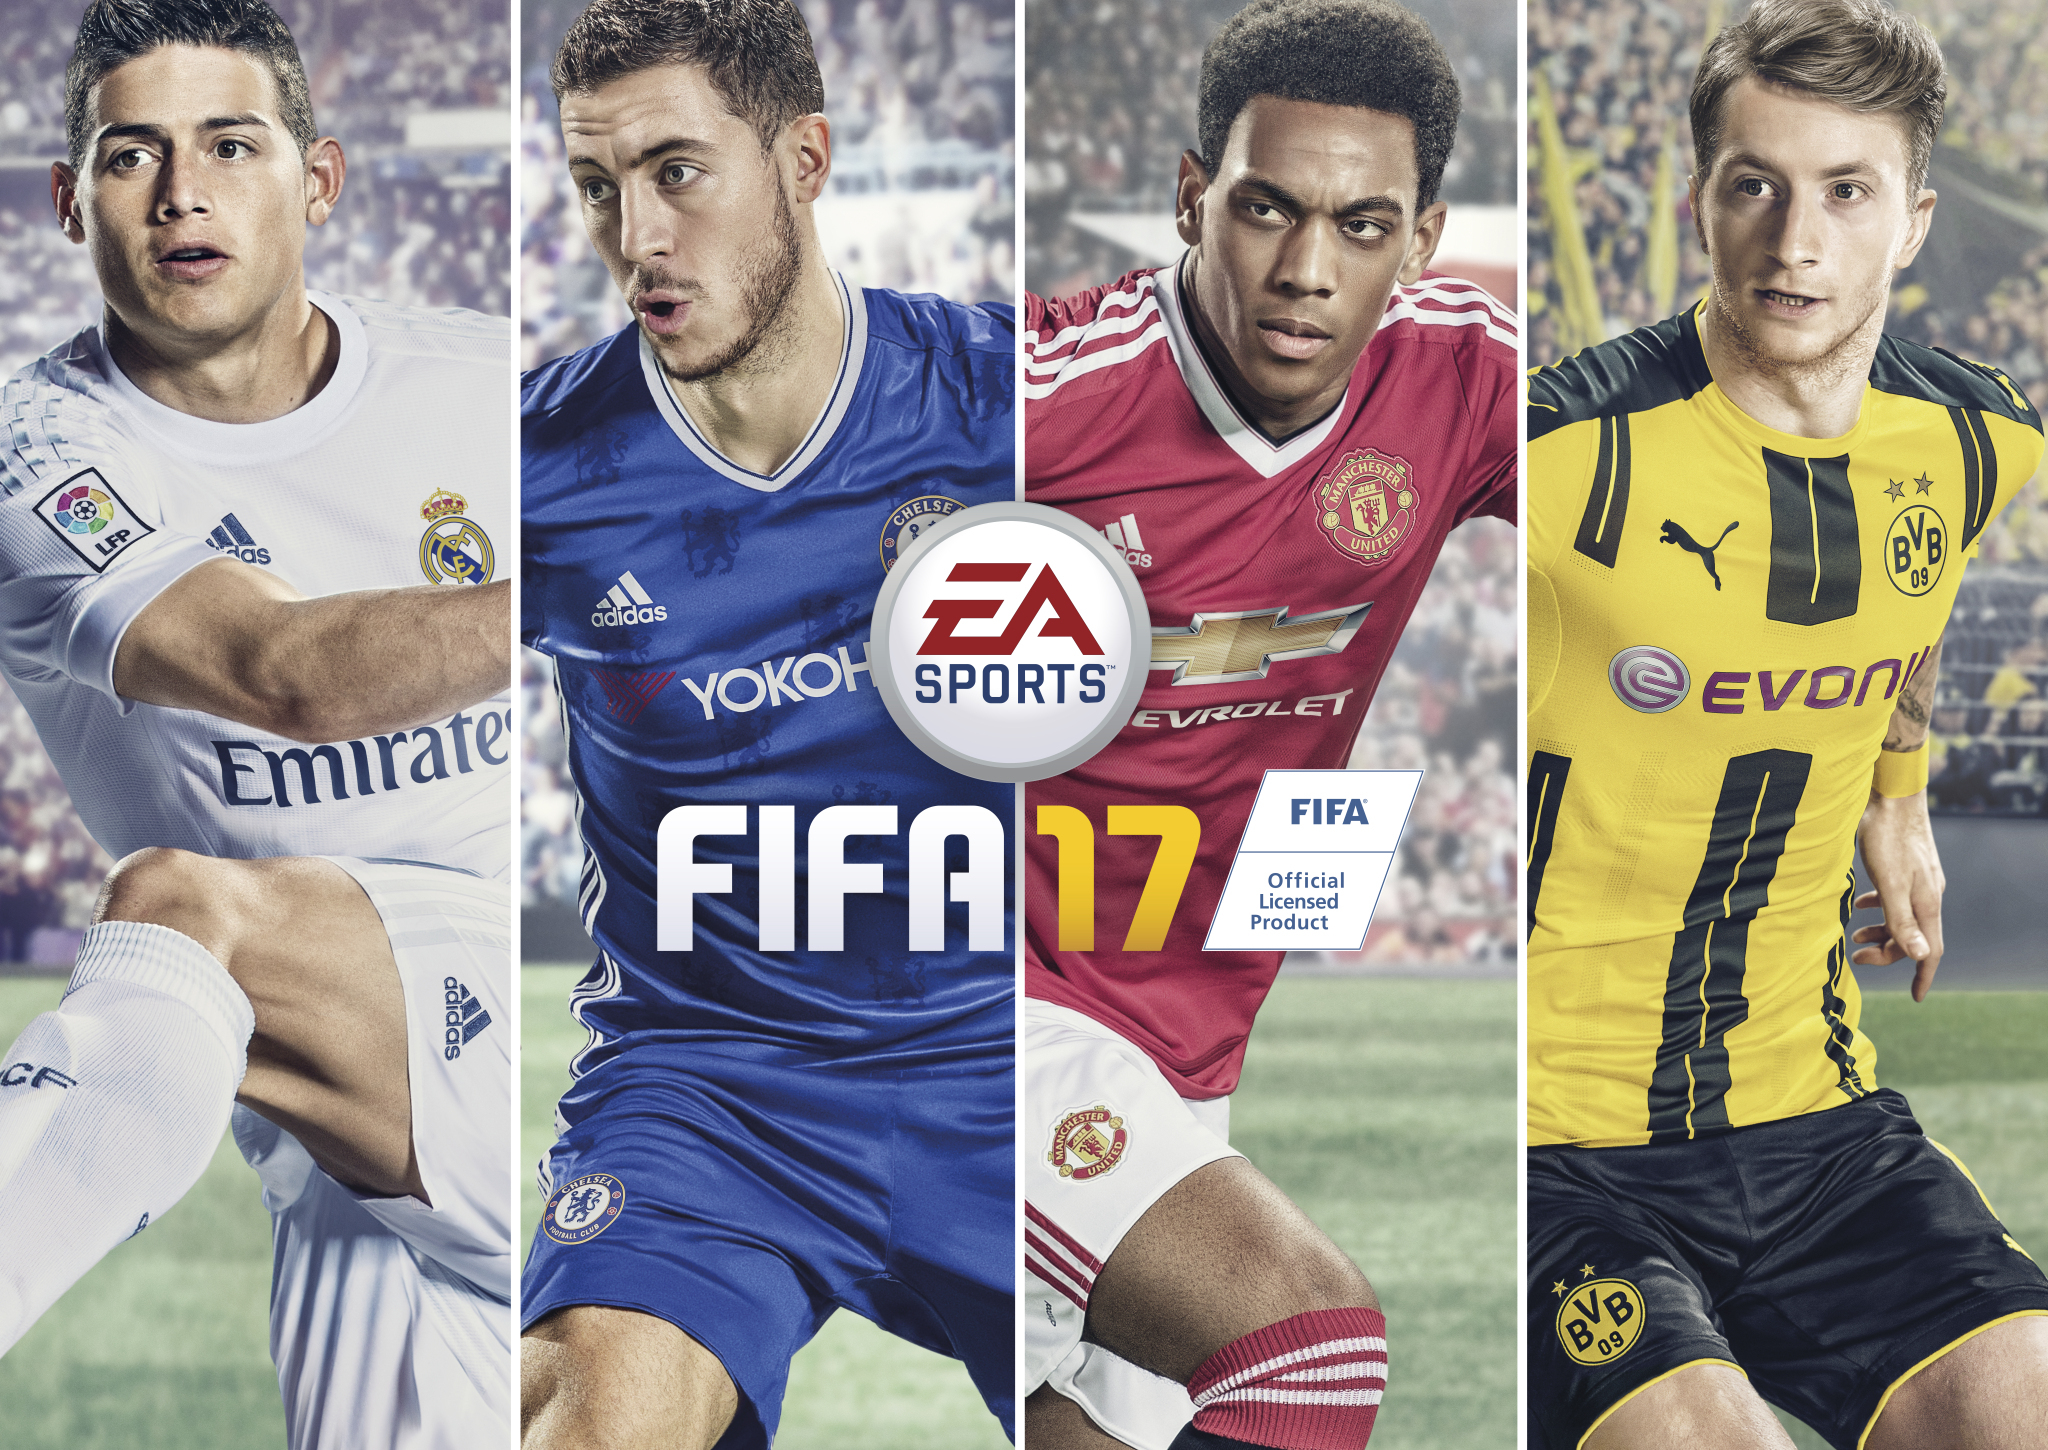 FIFA 17 to hit stores on September 27 Pre-Order Yours